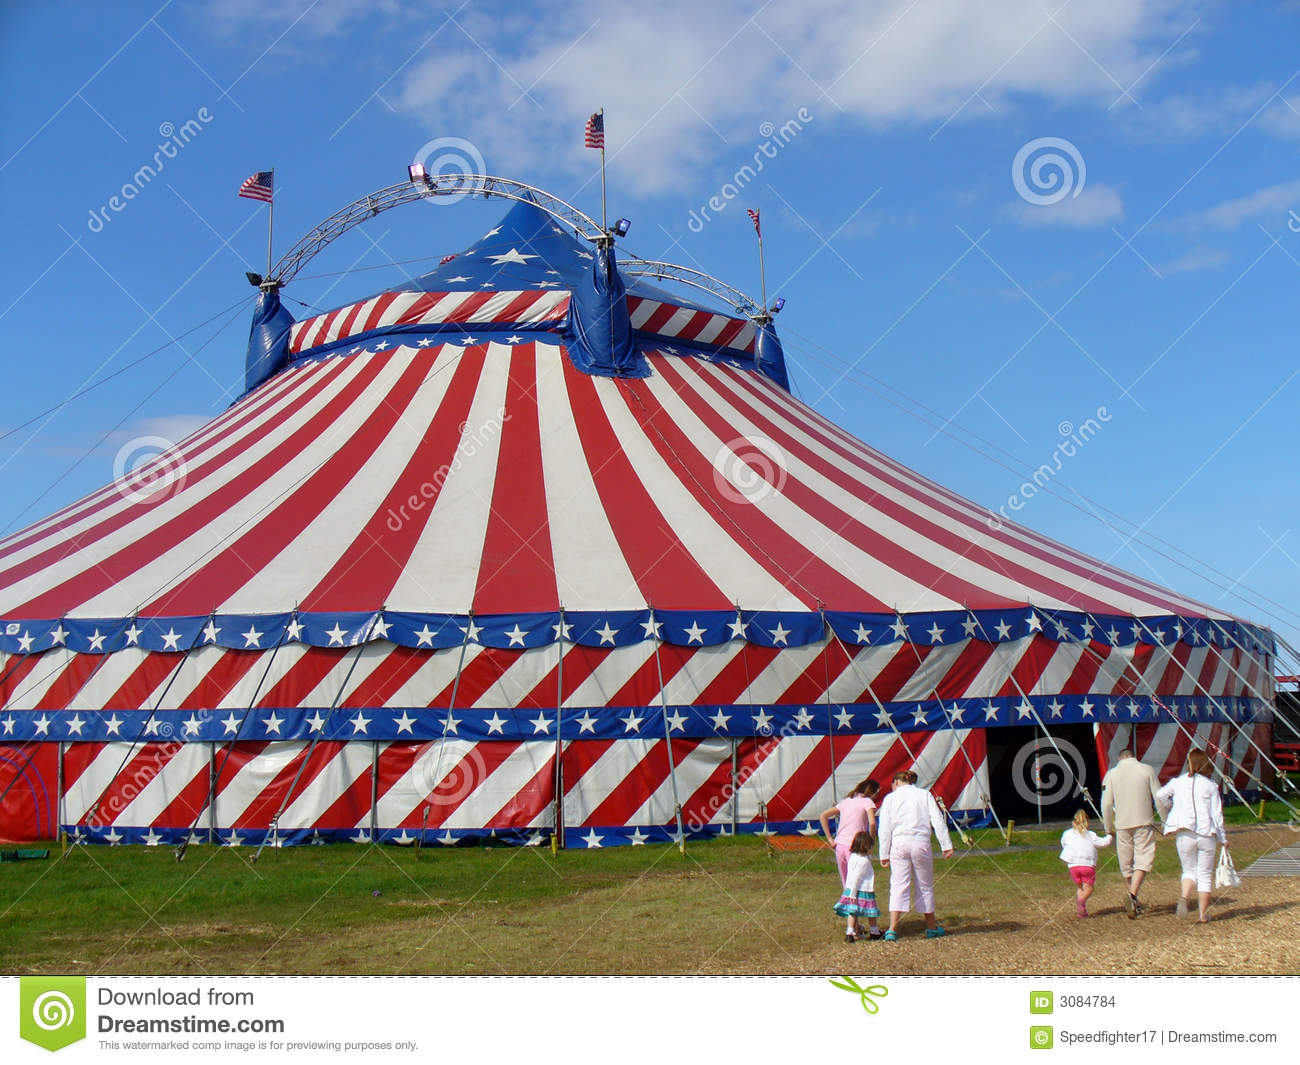 Circus Big Top Tent  sc 1 st  Dreamstime.com & Circus Big Top Tent stock photo. Image of marquee glory - 3084784